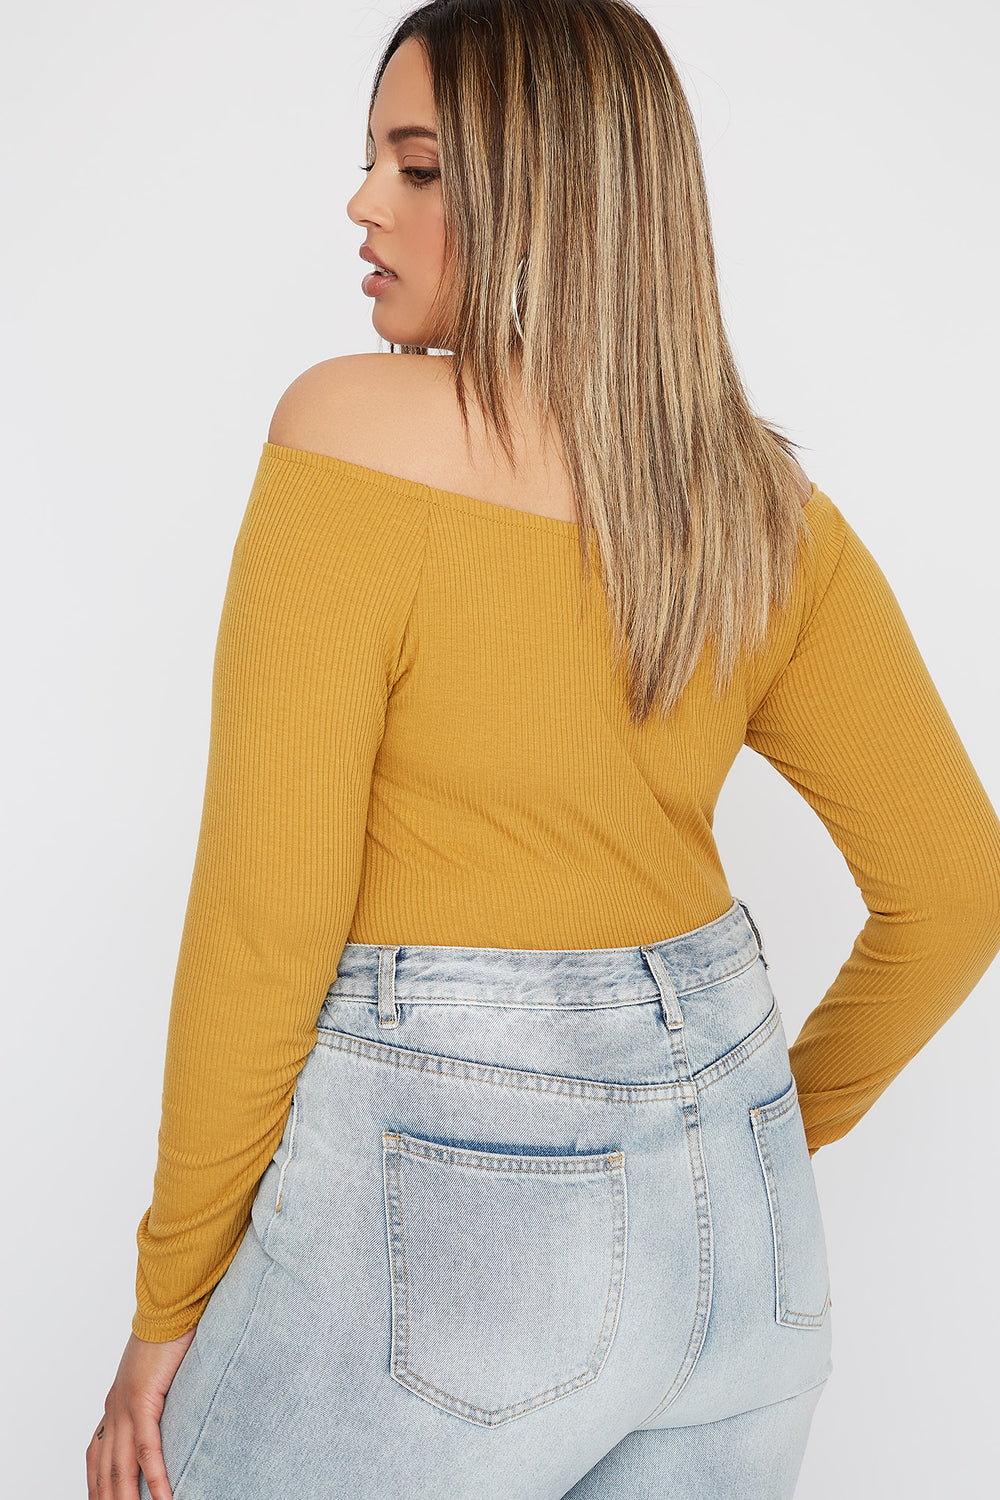 Plus Size Knit Off the Shoulder Button Long Sleeve Mustard